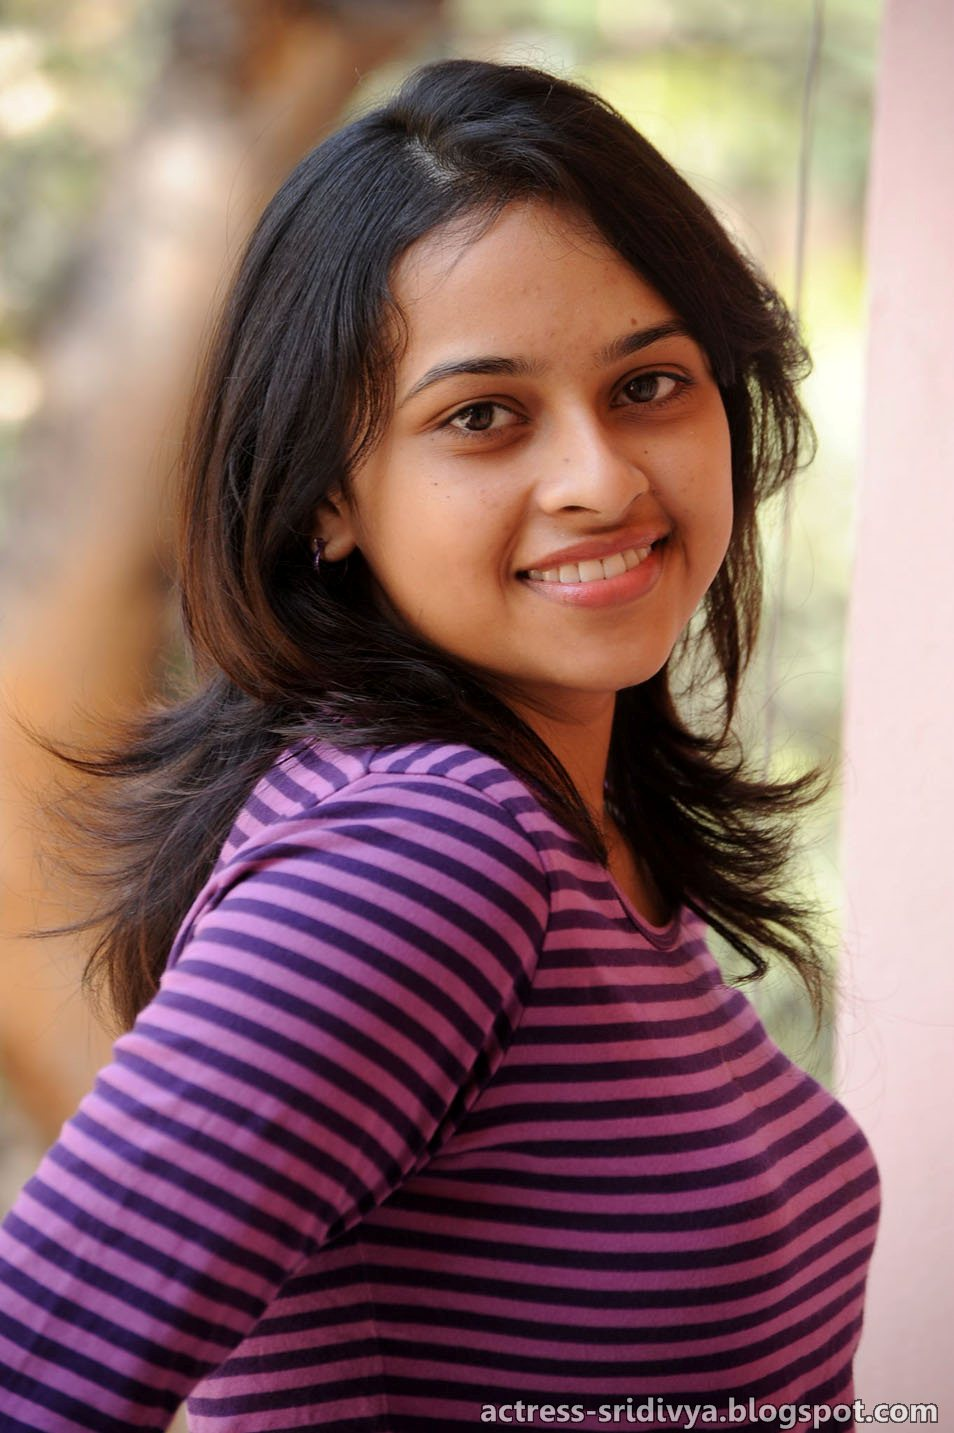 Actress Sri Divya Photos: Sri Divya In Jeans Cute Photoshoot Stills, Sridivya New